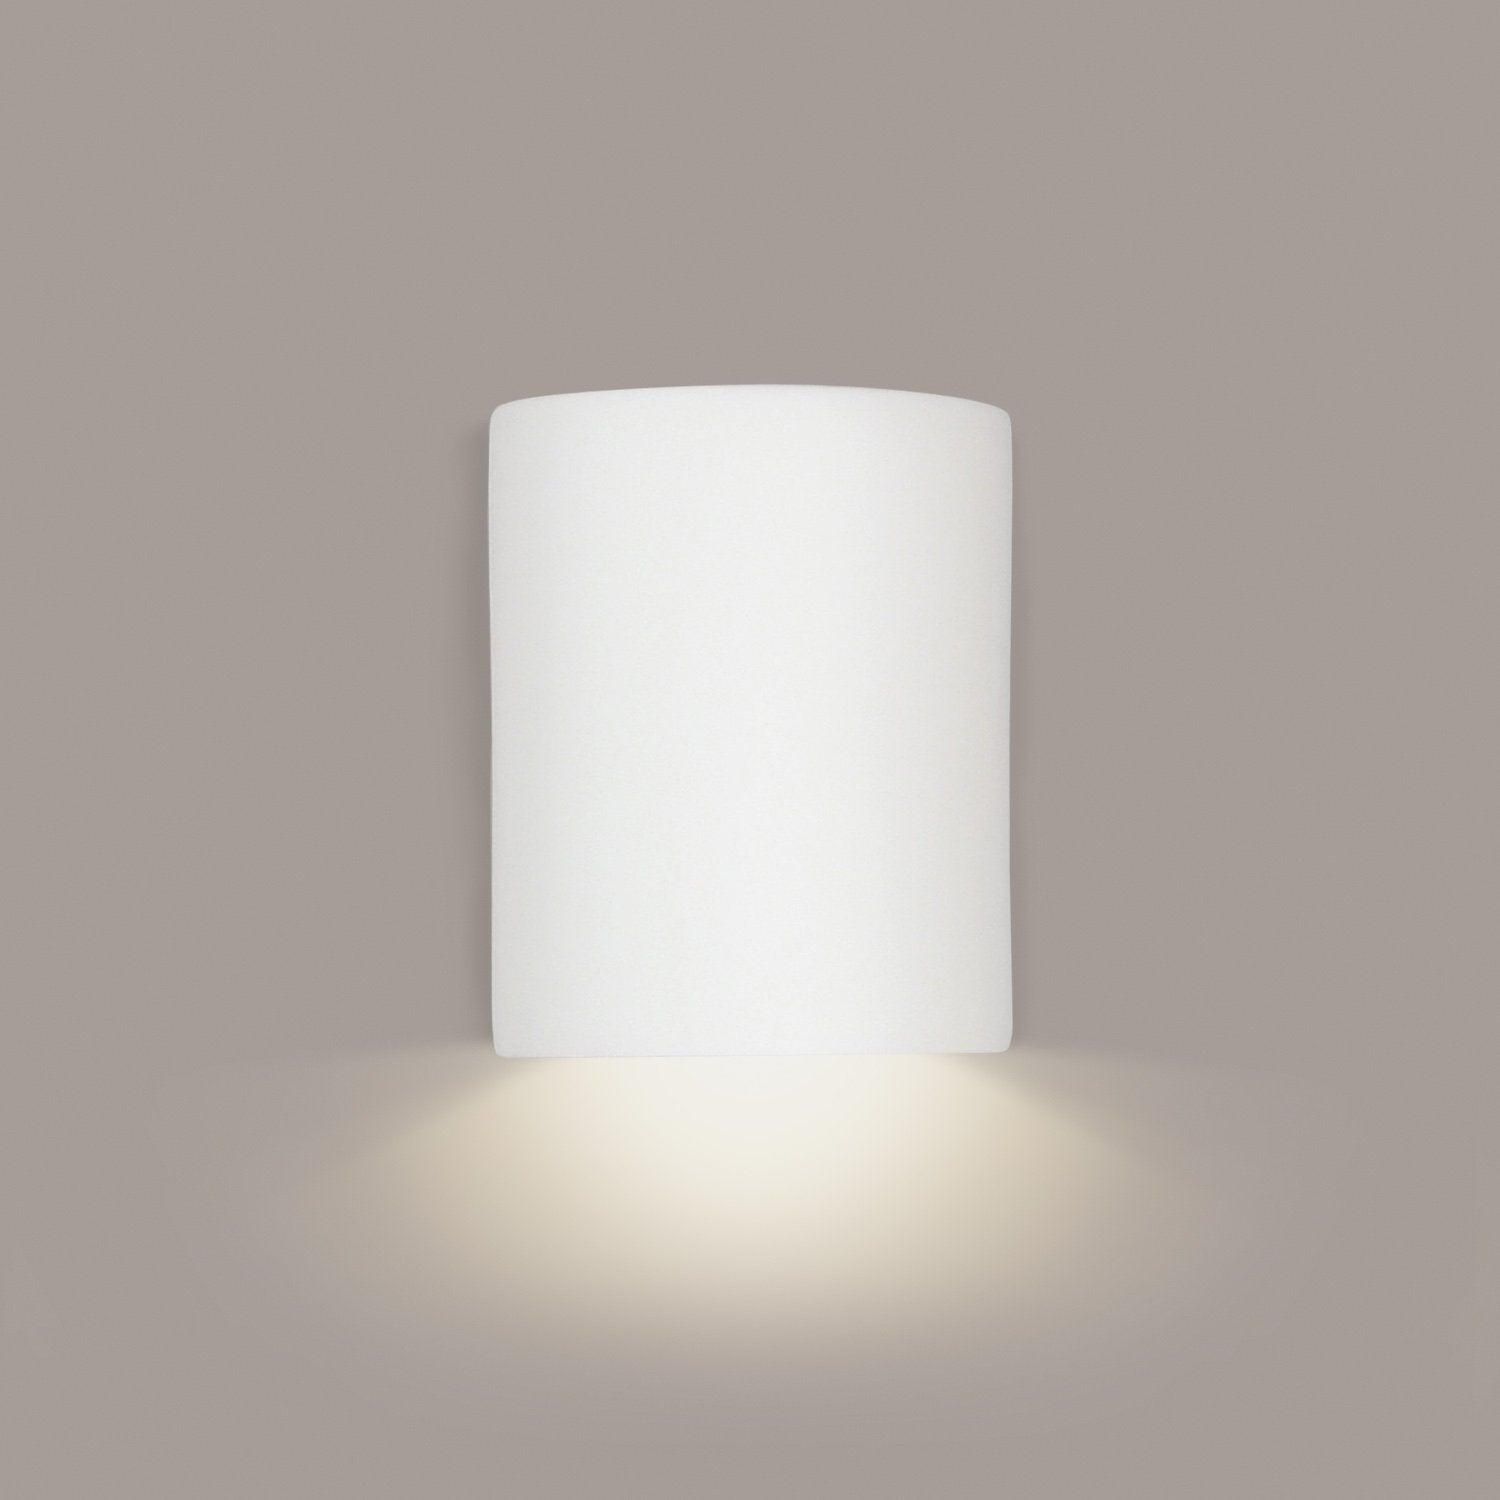 A19 211-GU24-A2 Islands of Light Collection Leros Straw Finish Wall Sconce from A19